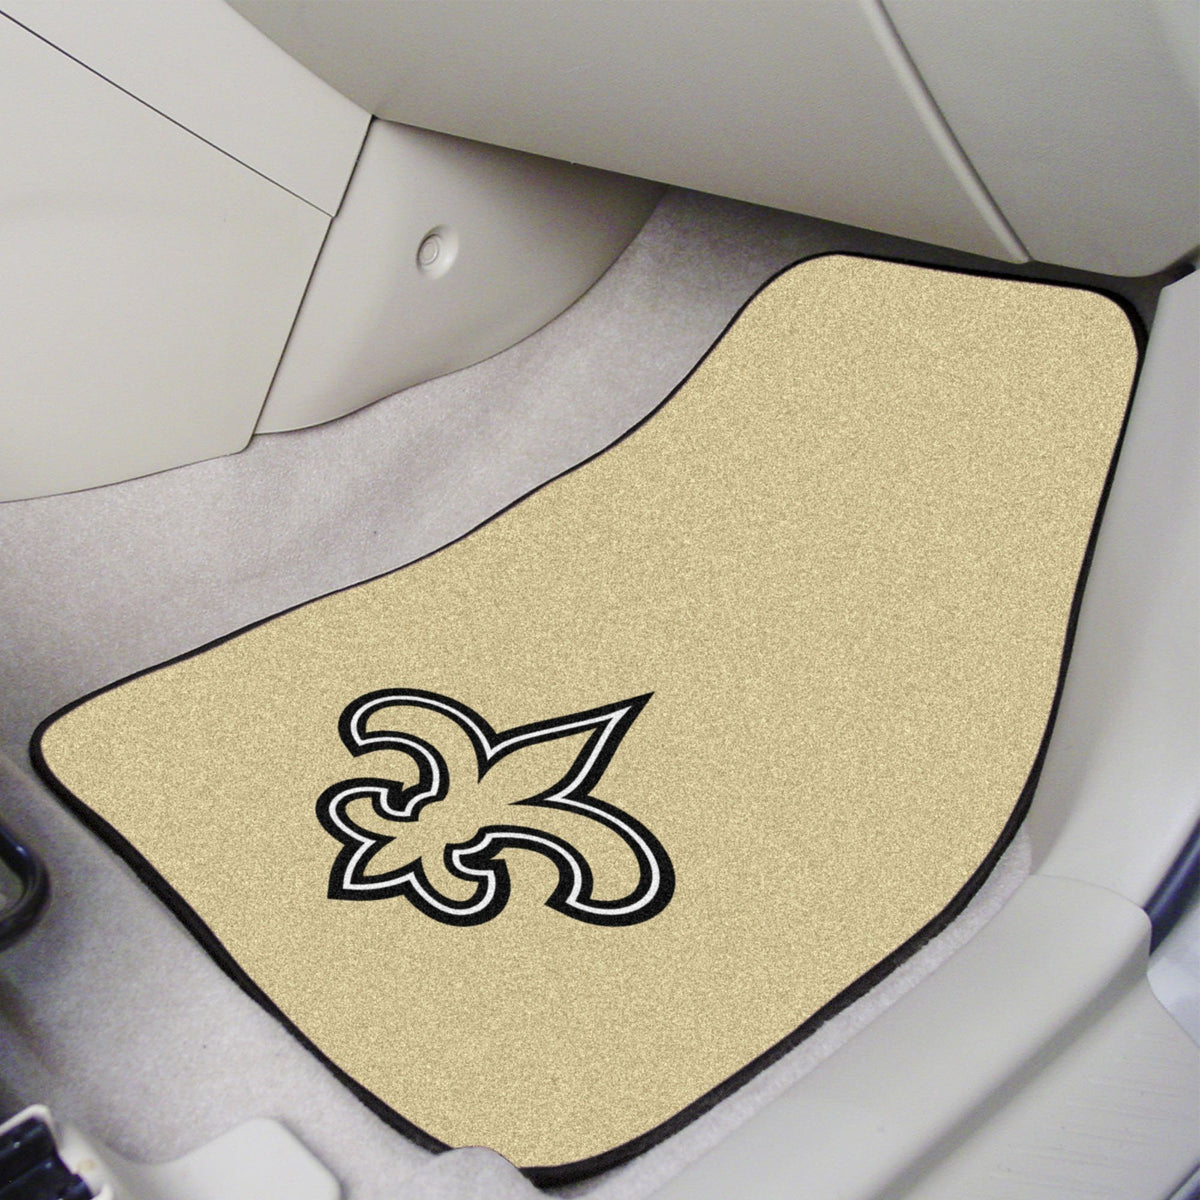 "NFL - 2-pc Carpet Car Mat Set, 17"" x 27"" NFL Mats, Front Car Mats, 2-pc Carpet Car Mat Set, NFL, Auto Fan Mats New Orleans Saints"